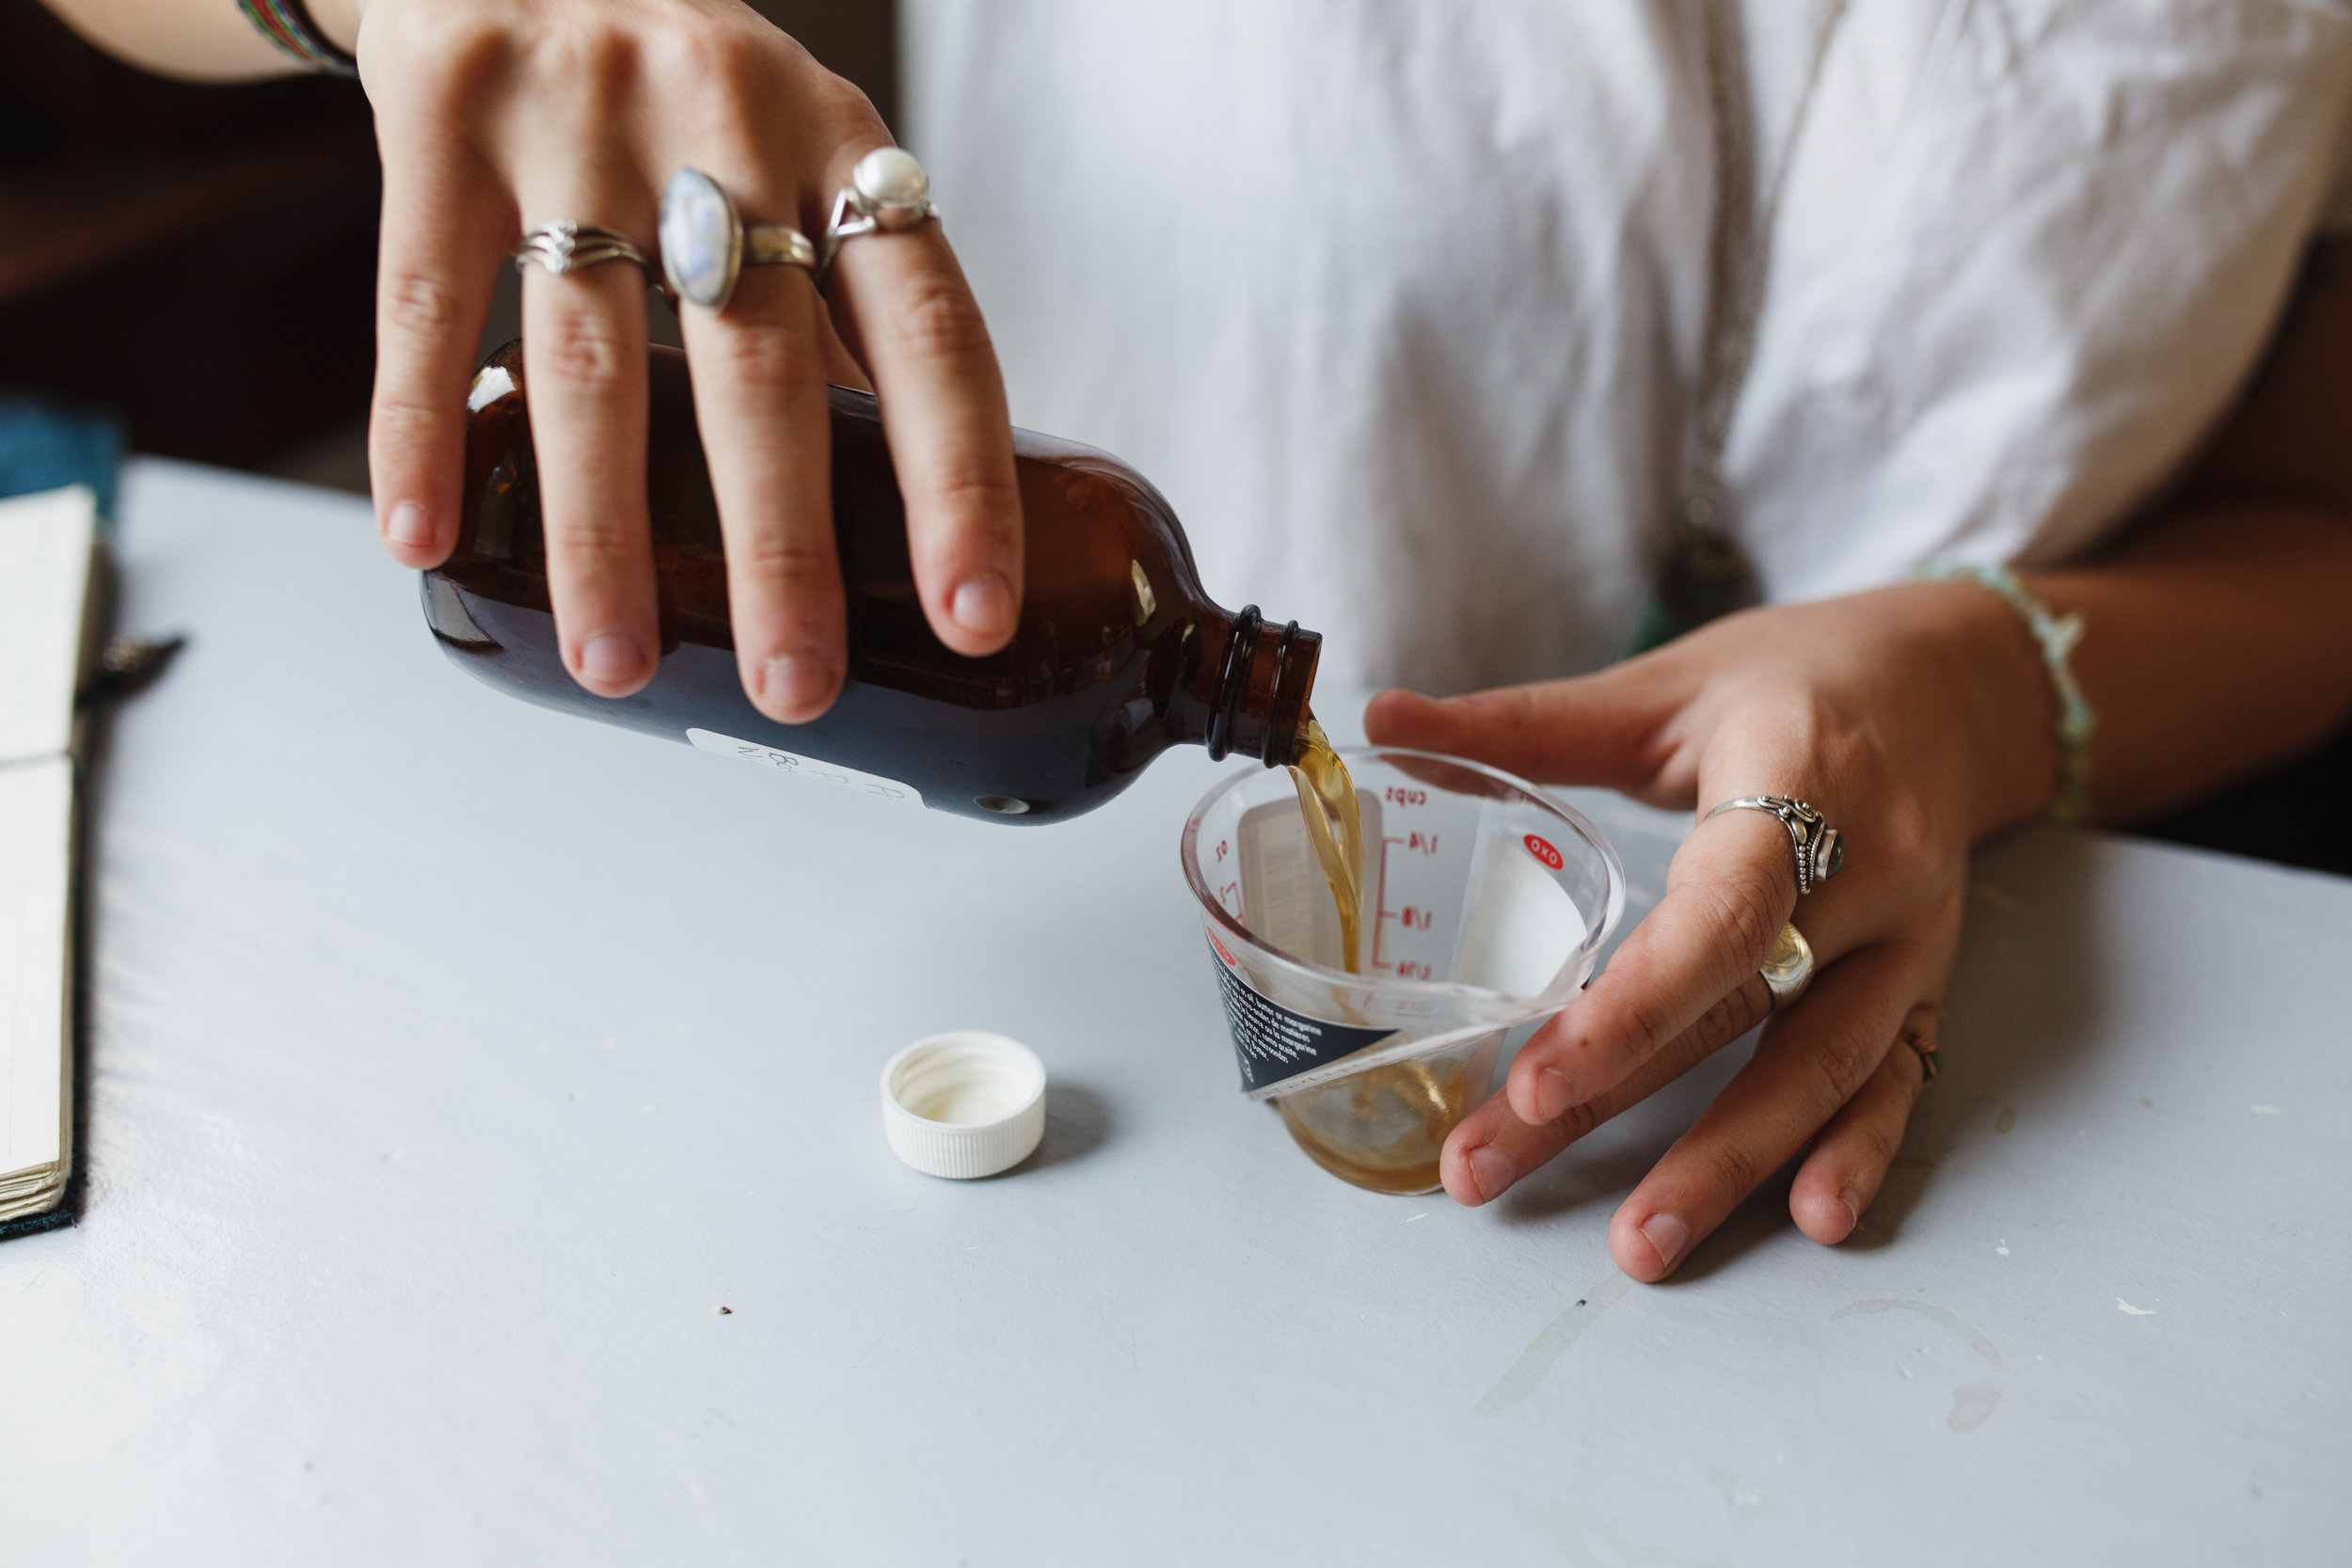 Tinctures being poured and measured